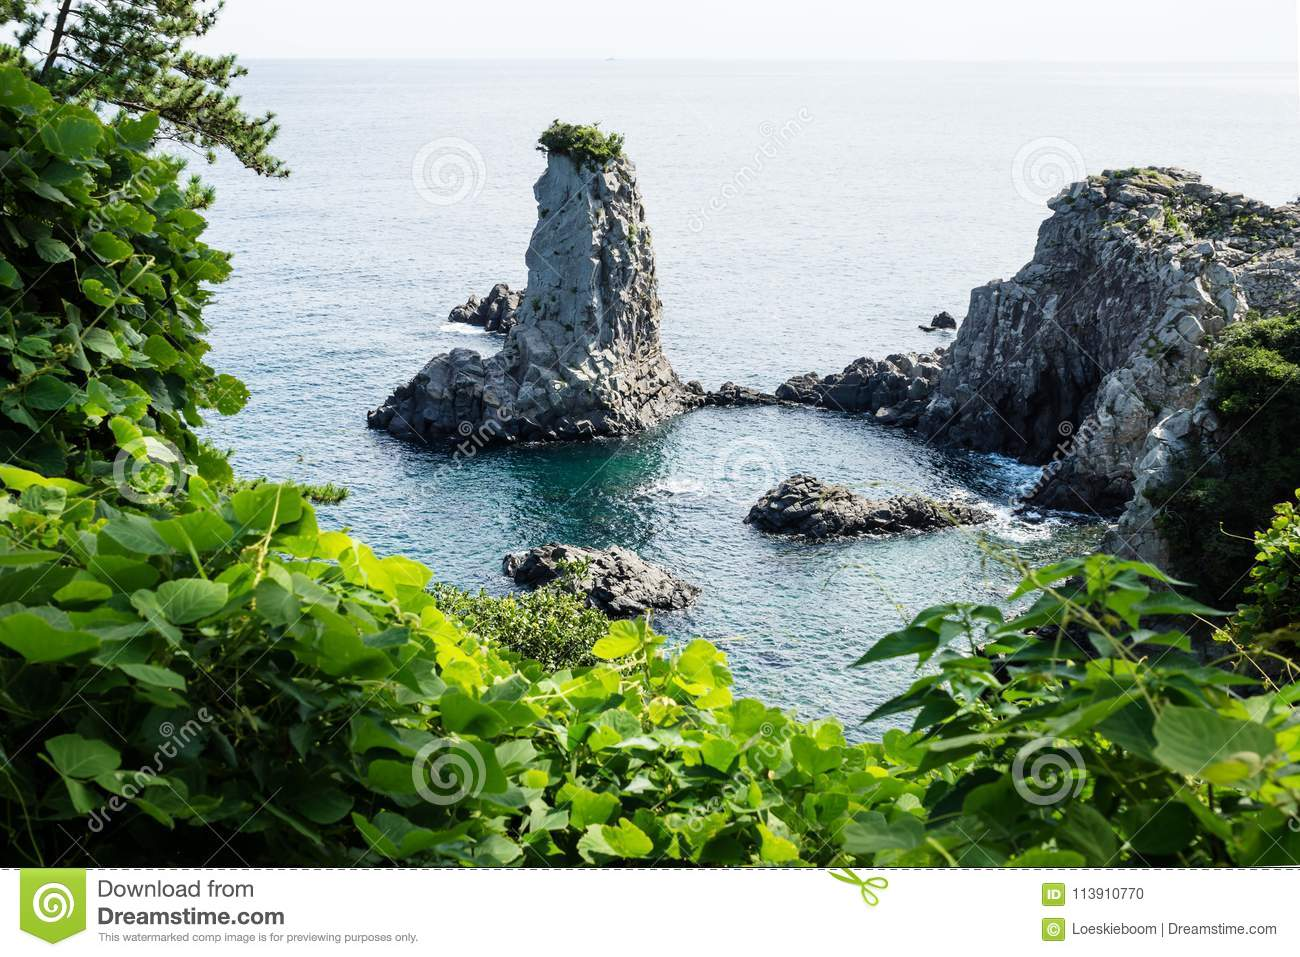 Rock formation Oedolgae surrounded by leaves close in the ocean at Seogwipo, Jeju Island, Korea